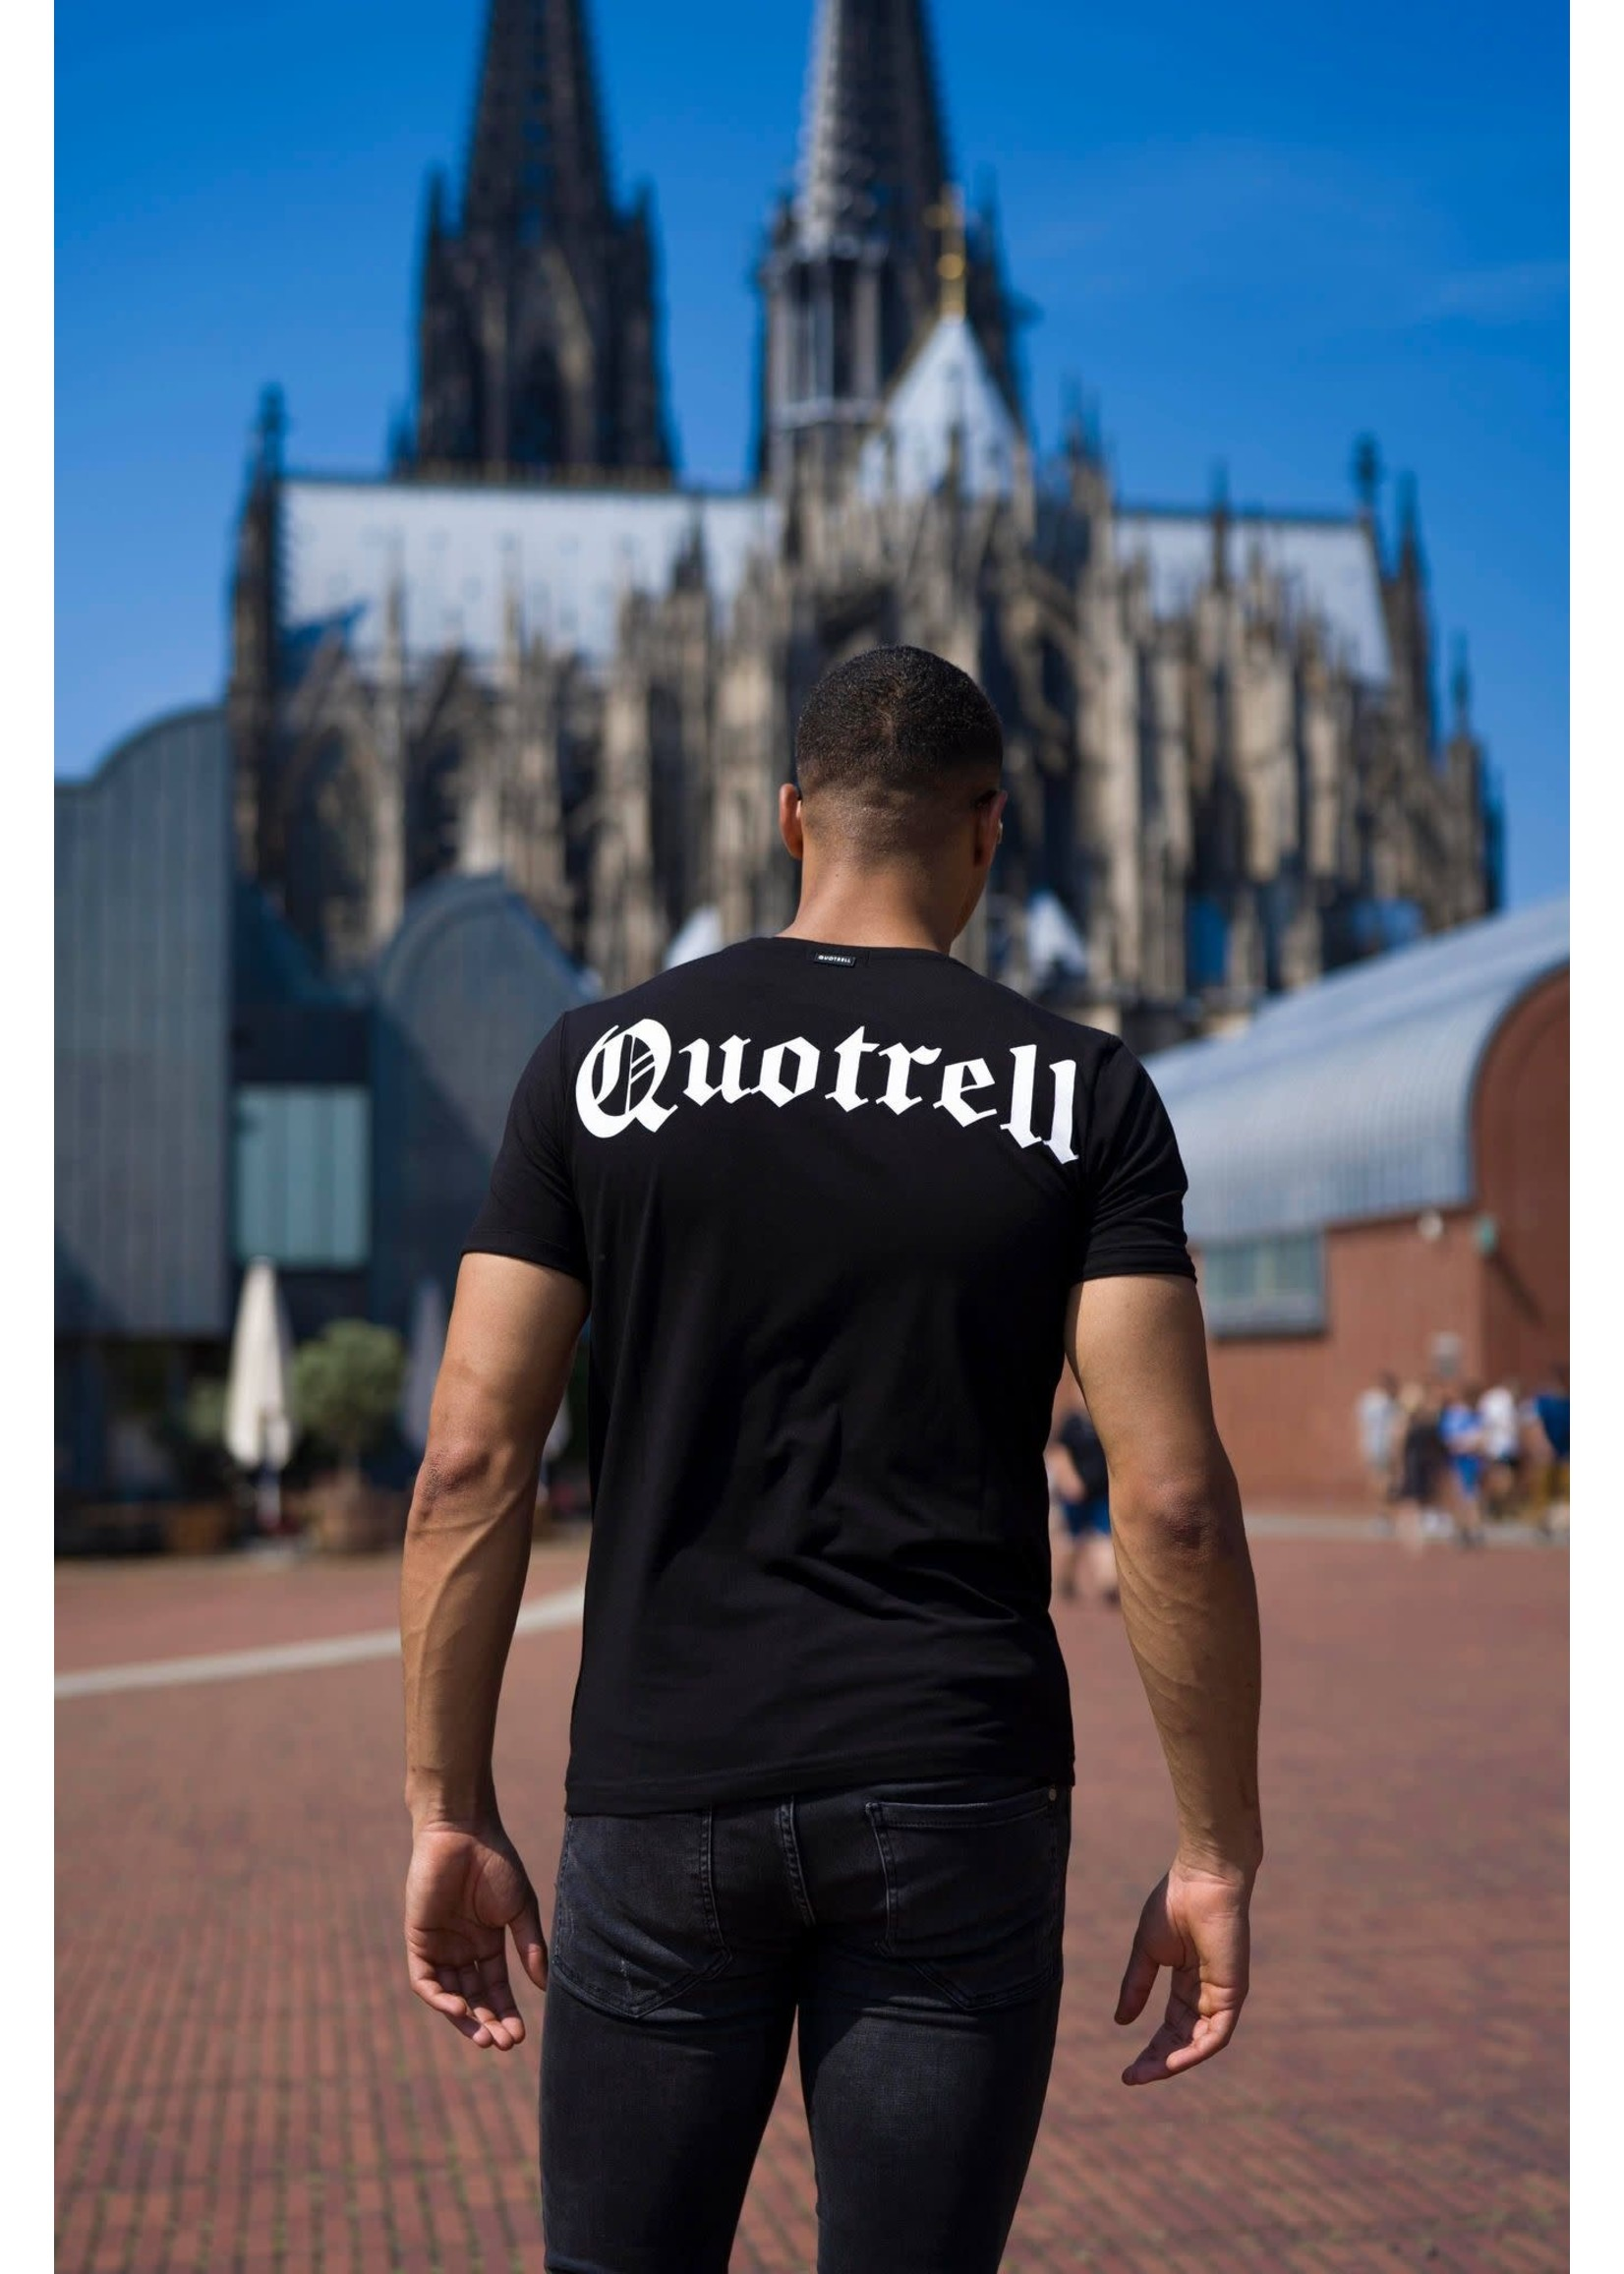 Quotrell QUOTRELL Wing Tee 2.0 - Black